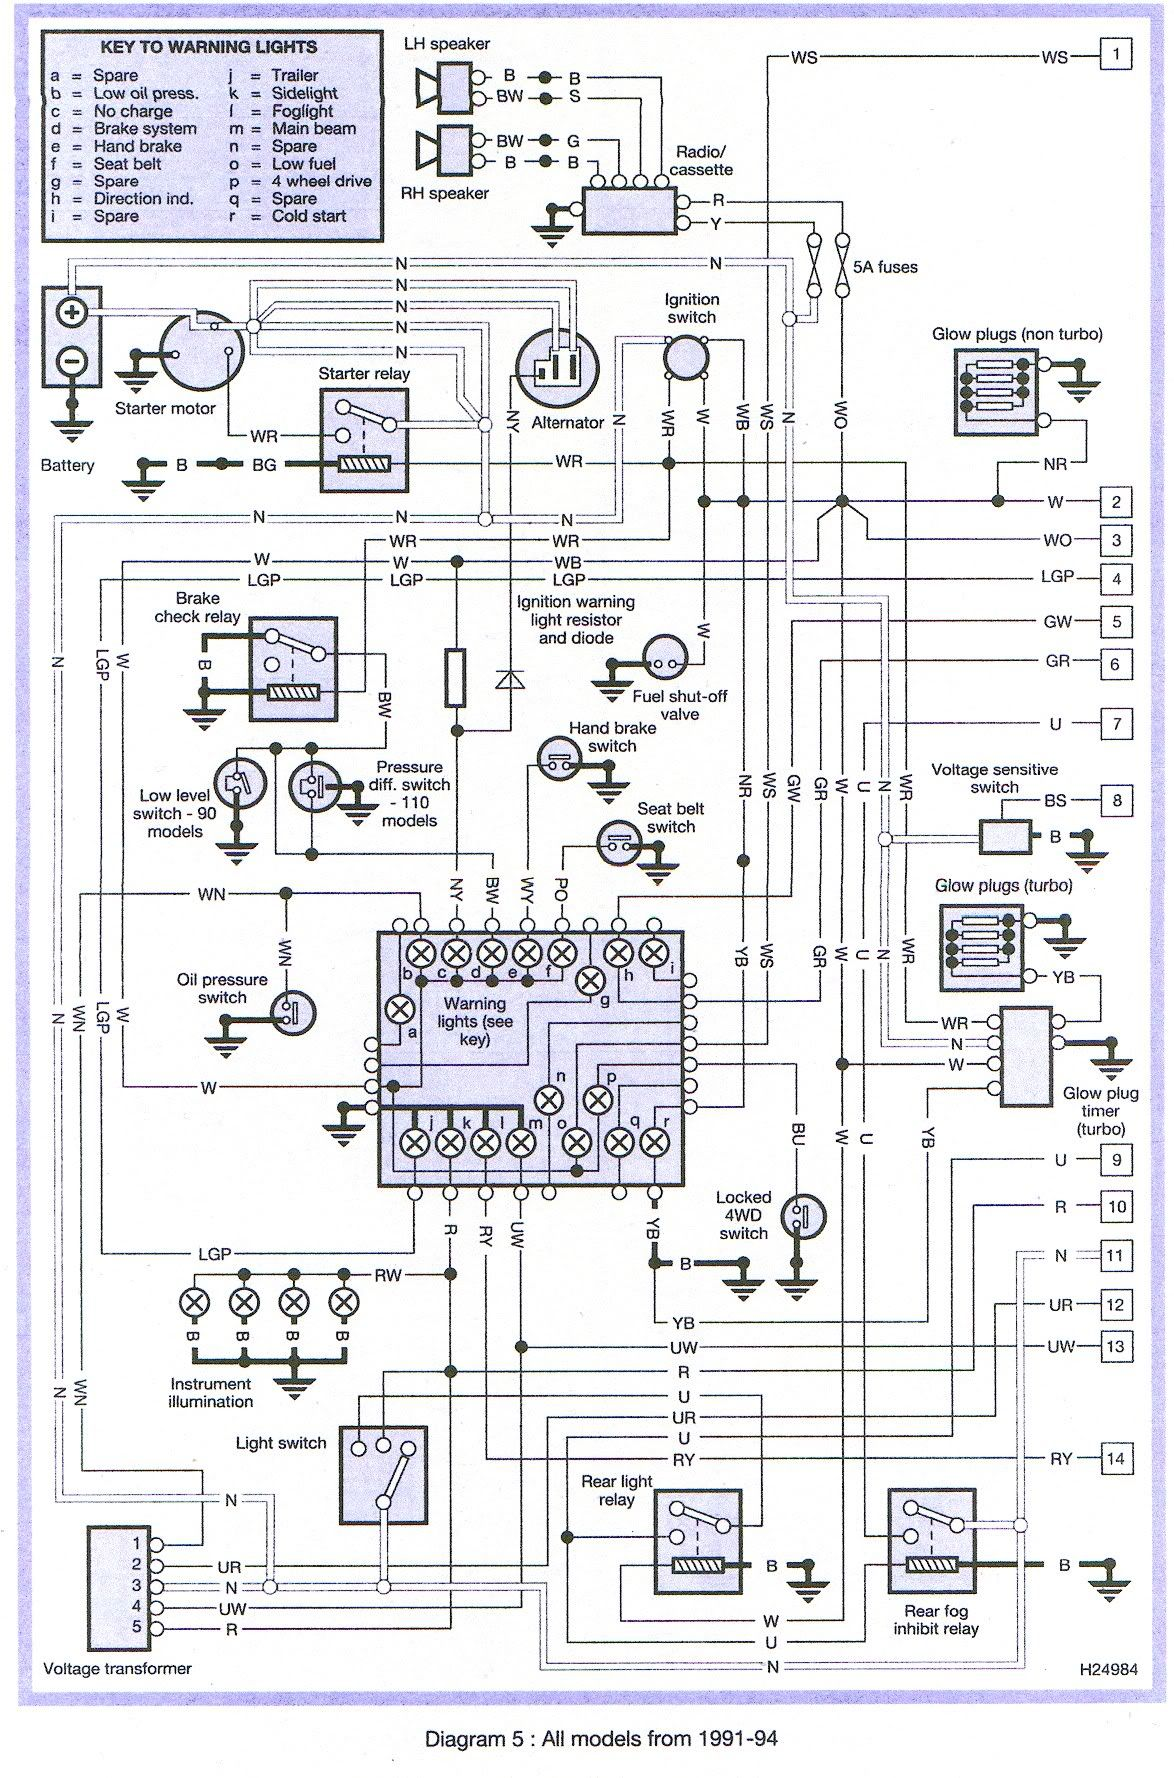 Land Rover Discovery Wiring Diagram | Manual Repair With